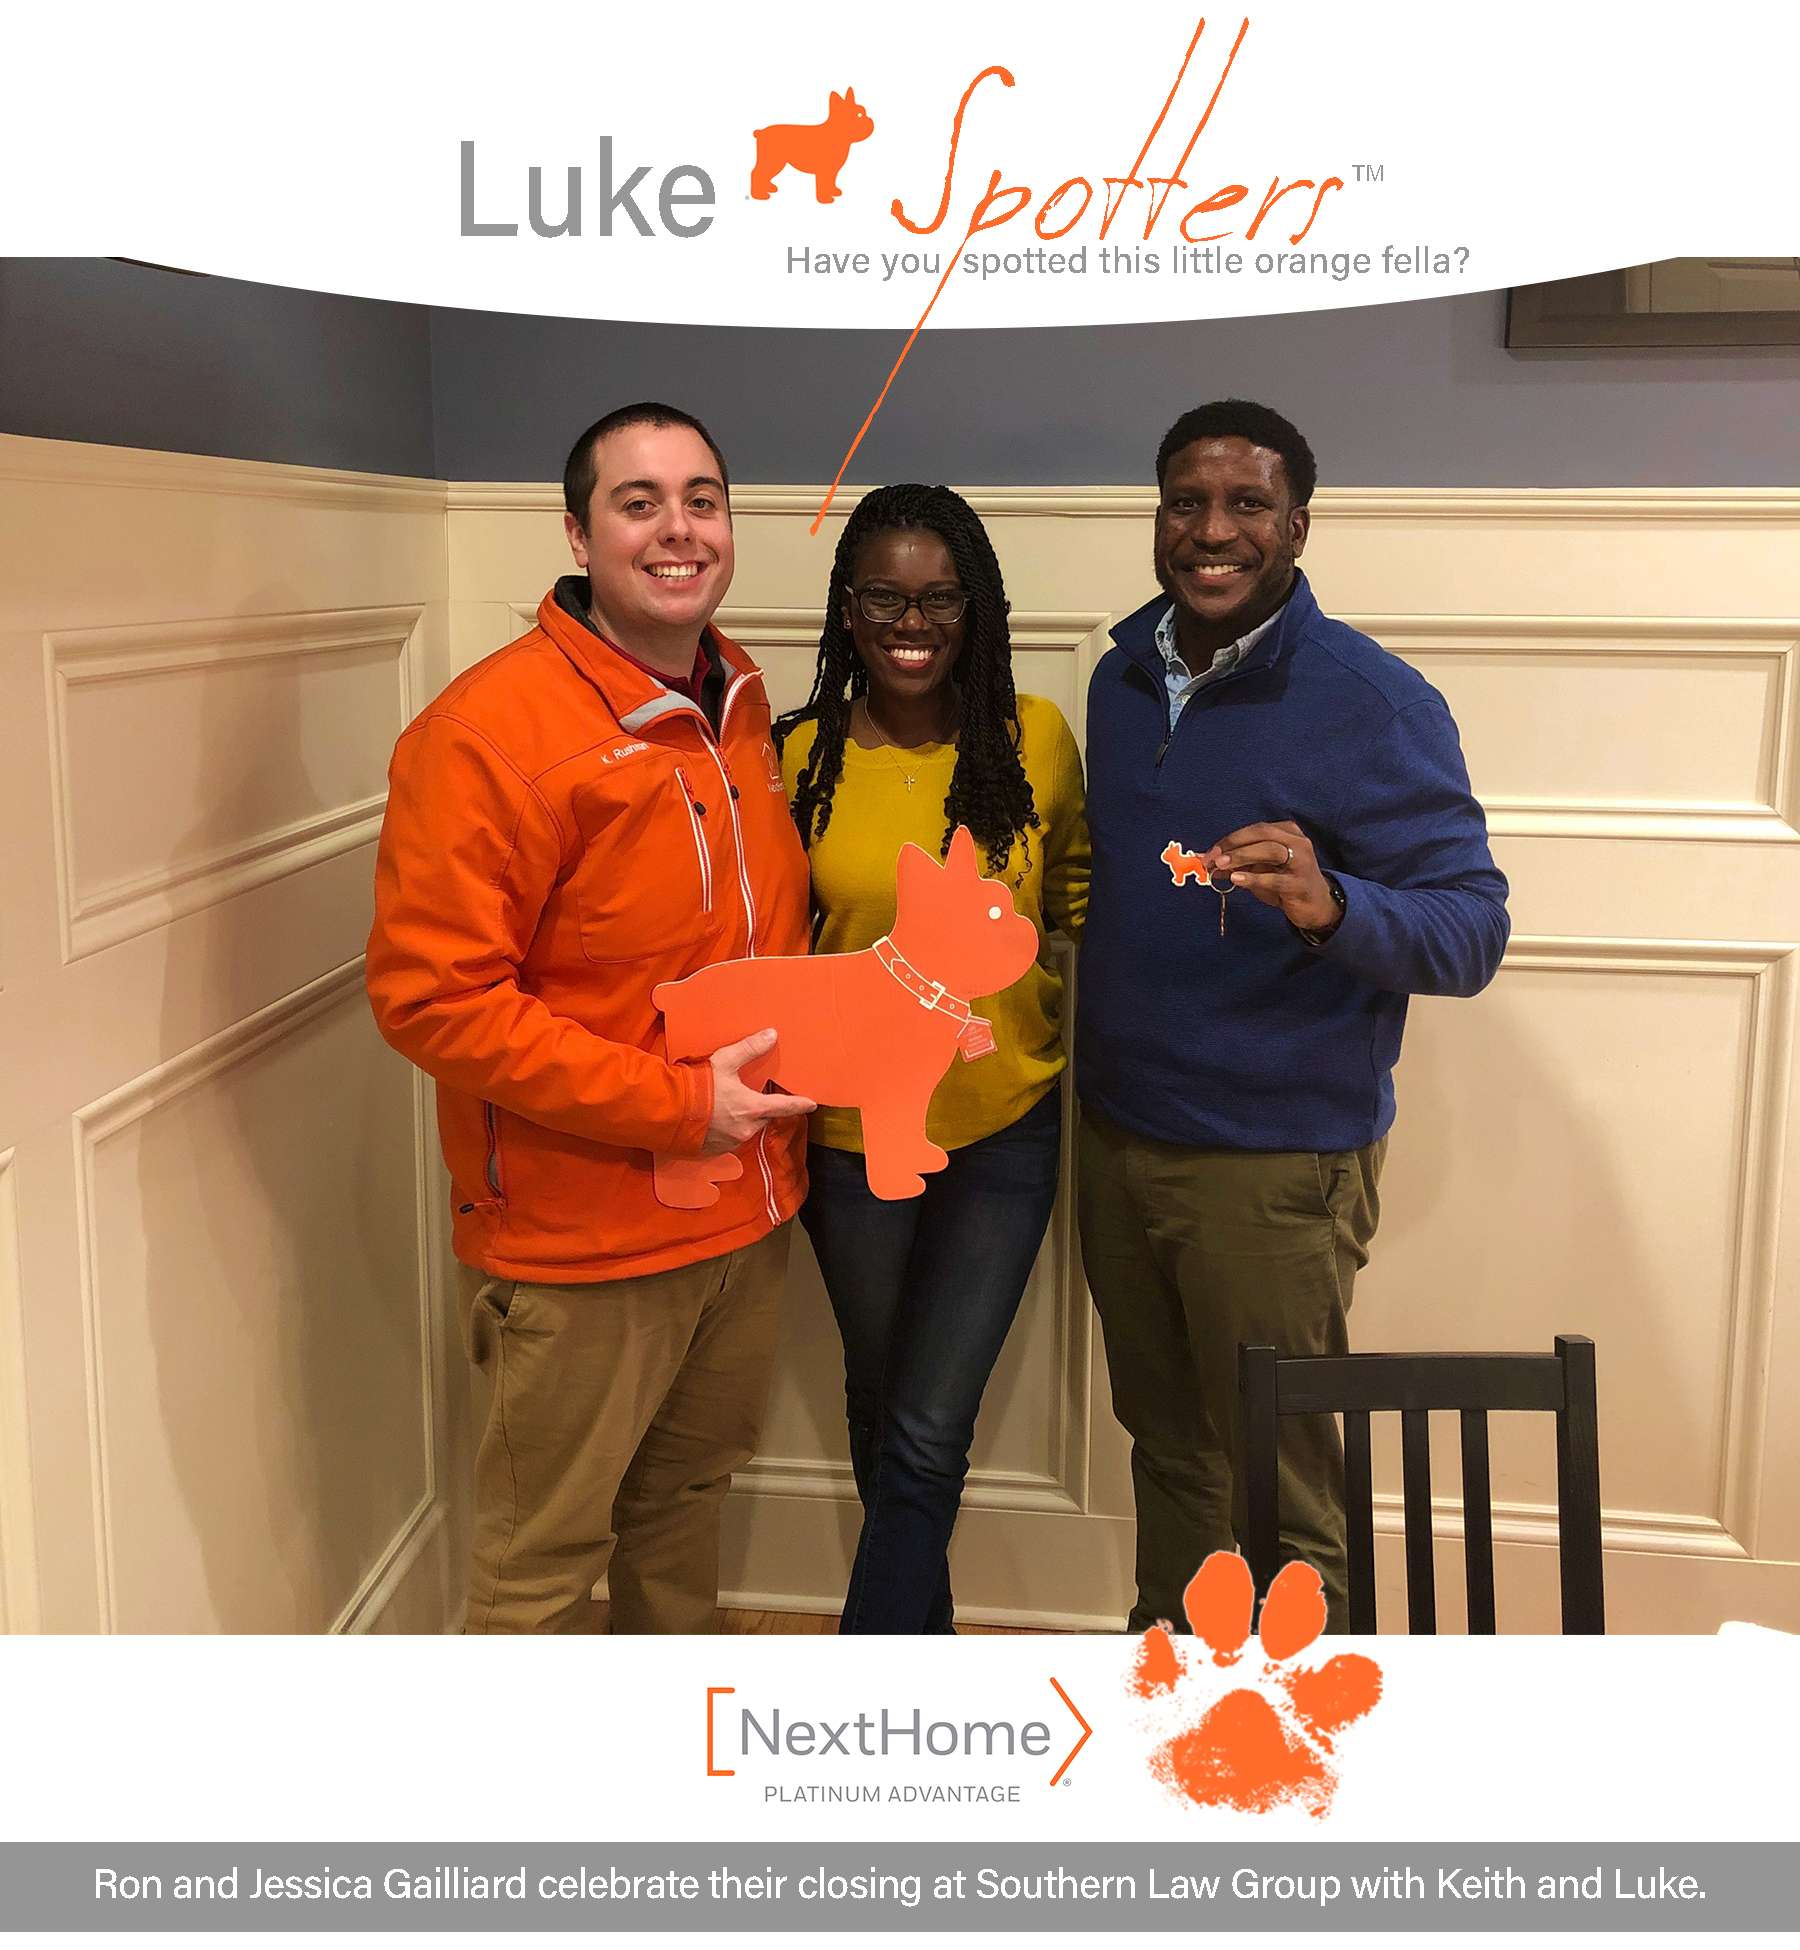 Ron and Jessica Gailliard celebrate their closing at Southern Law Group with Keith Rushman and Luke of NextHome Platinum Advantage.